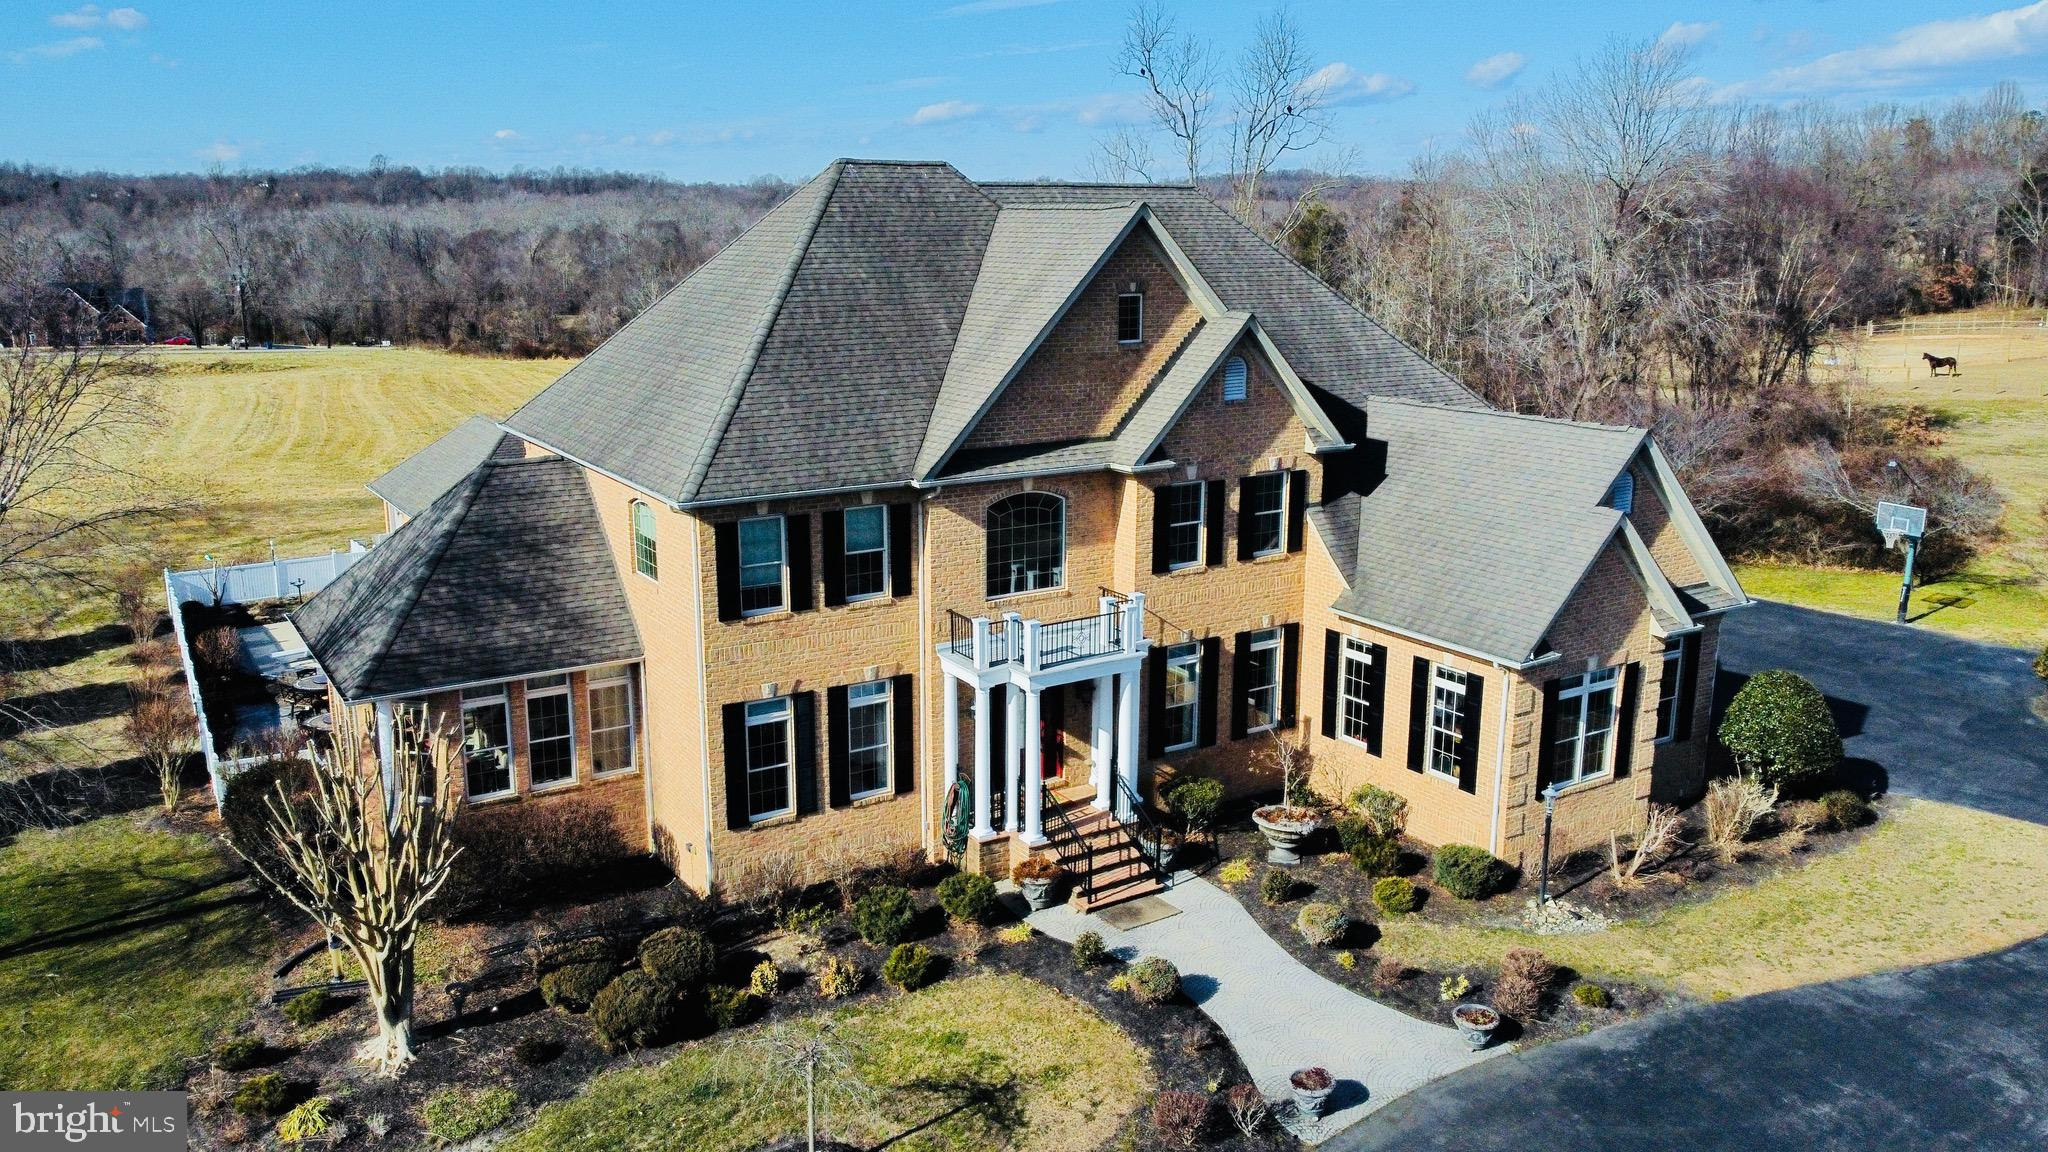 Simply Amazing! Luxury home w/ beautiful country setting but close enough to get to amenities in 5-7